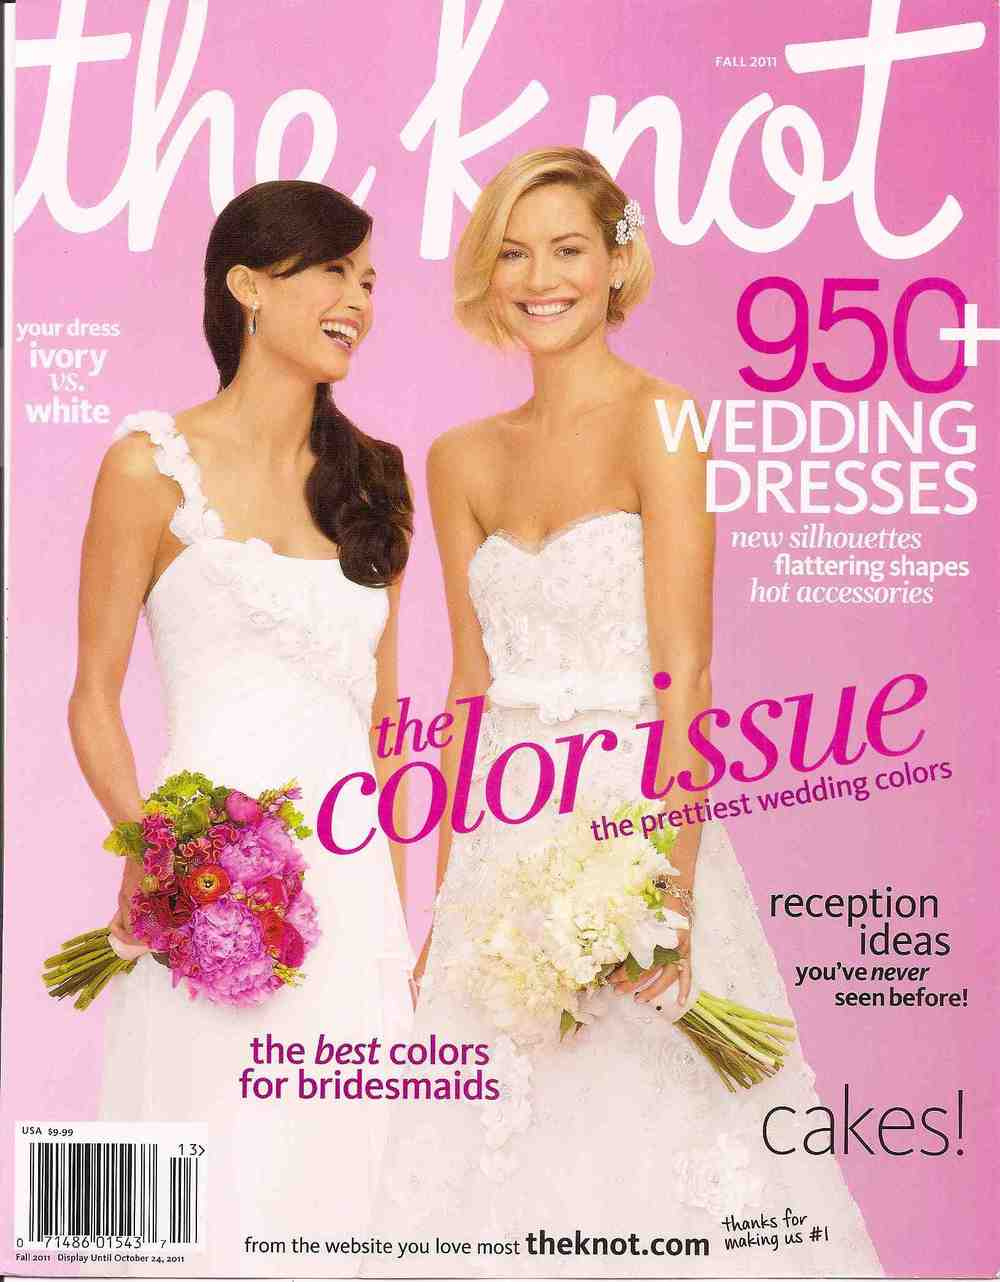 theknot_Fall2011_Cover.jpg